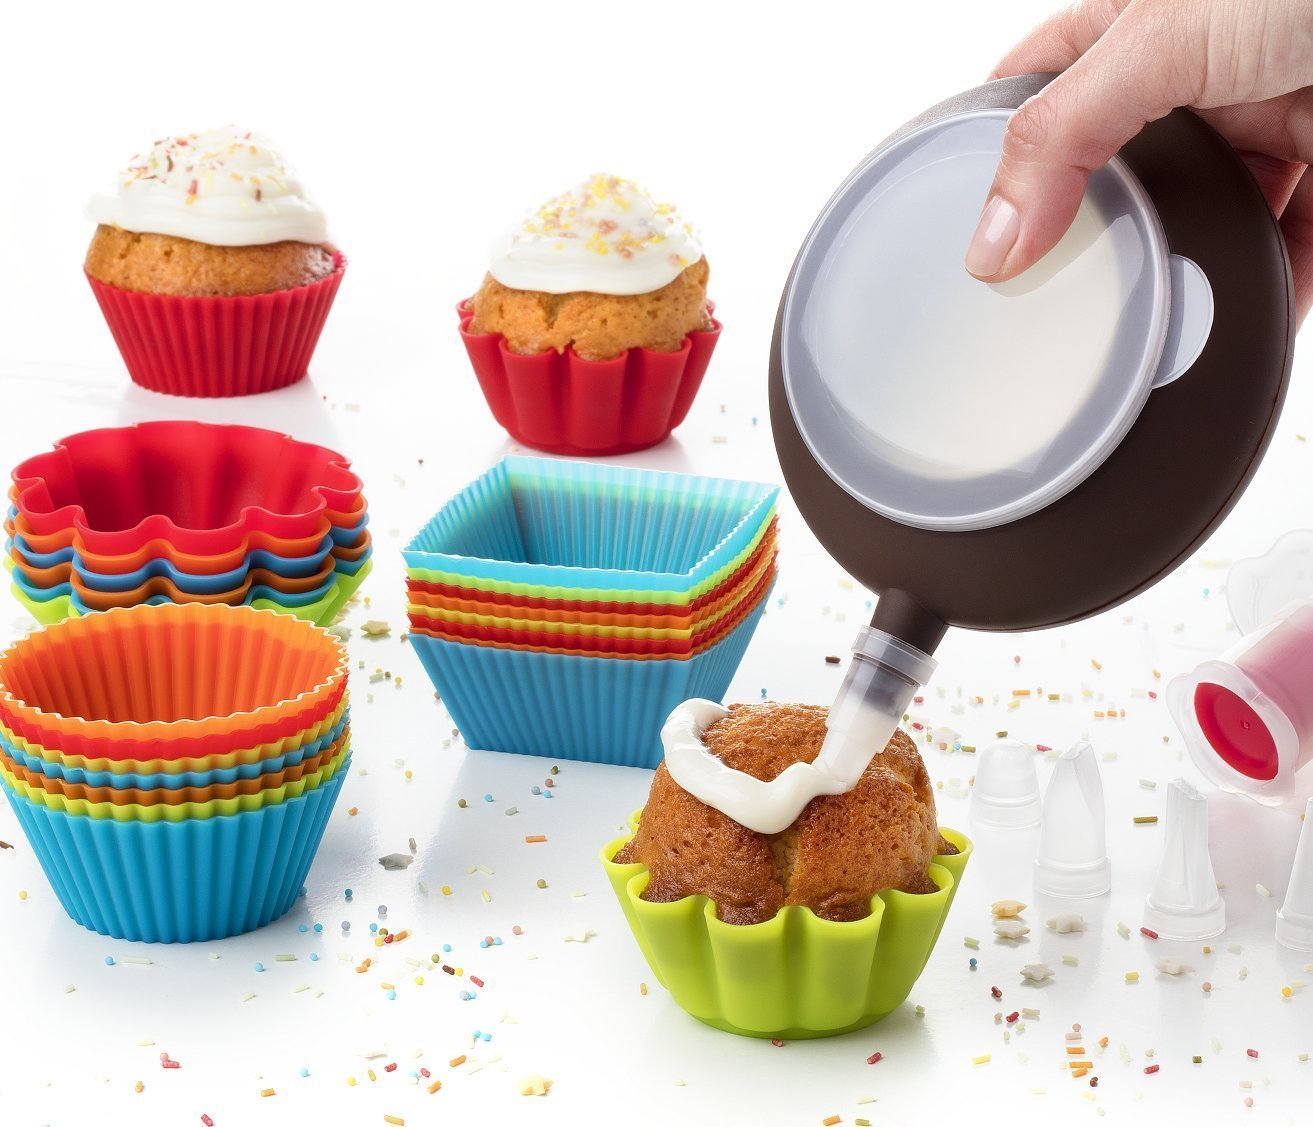 Kid Baking Set 24 Baking Muffin Molds Silicone Cupcake Liners + Corer Plunger + Cake Decorating Kit Bag Pen + 5 Icing Tips by Maxi Nature Maxi Nature Kitchenware Cupkit